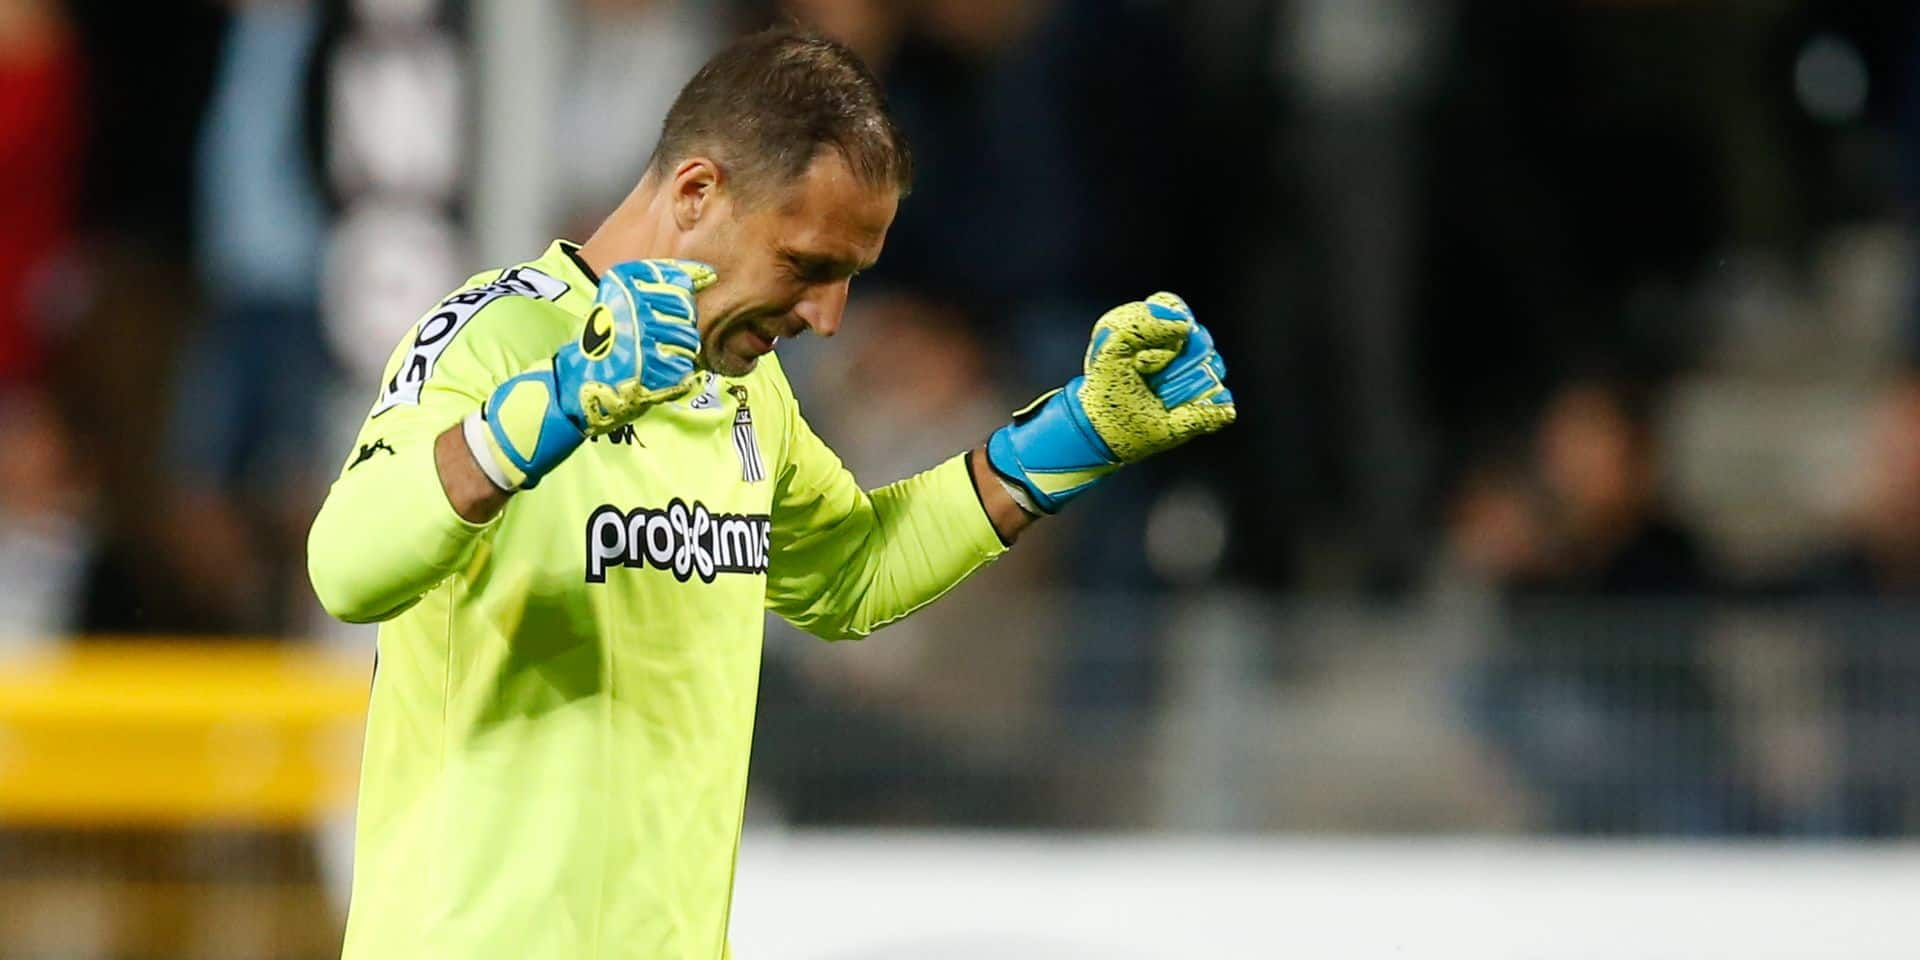 Charleroi's goalkeeper Nicolas Penneteau celebrates during a soccer match between Sporting Charleroi and KRC Genk, Friday 13 September 2019 in Charleroi, on the seventh day of the 'Jupiler Pro League' Belgian soccer championship season 2019-2020. BELGA PHOTO BRUNO FAHY